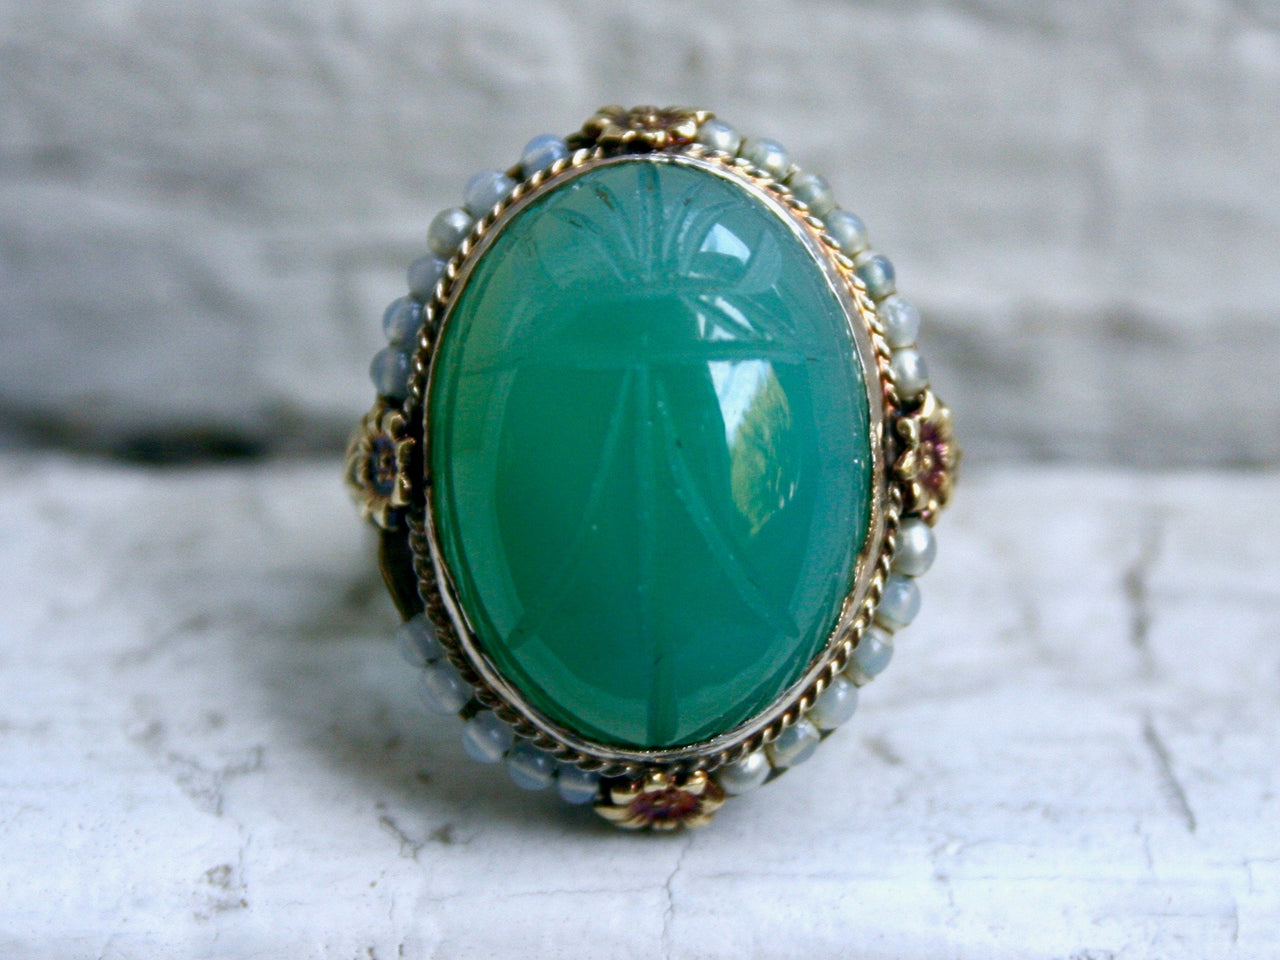 Antique 14K Yellow Gold Carved Green Chalcedony Ring Filigree Engagement Ring - 15ct.